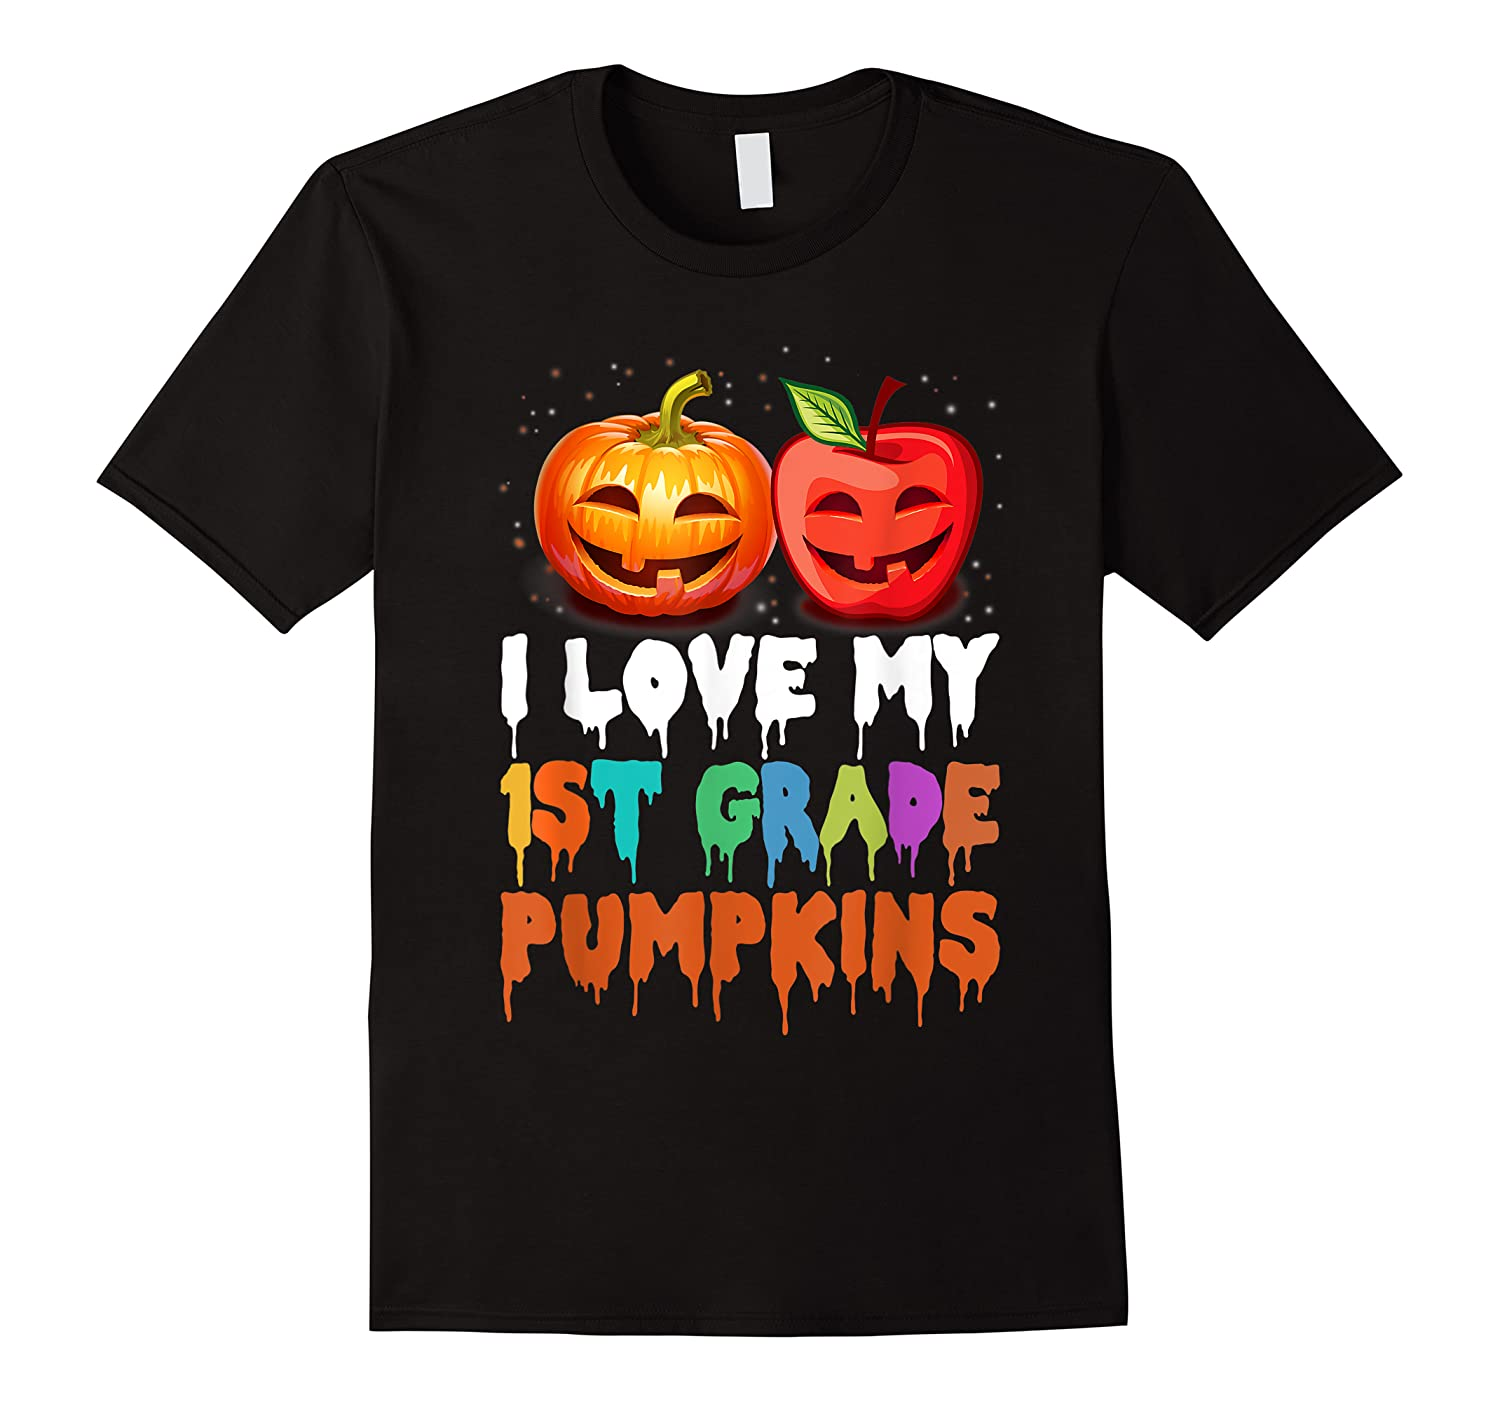 Love My 1st Grade Pumpkins Halloween Shirts